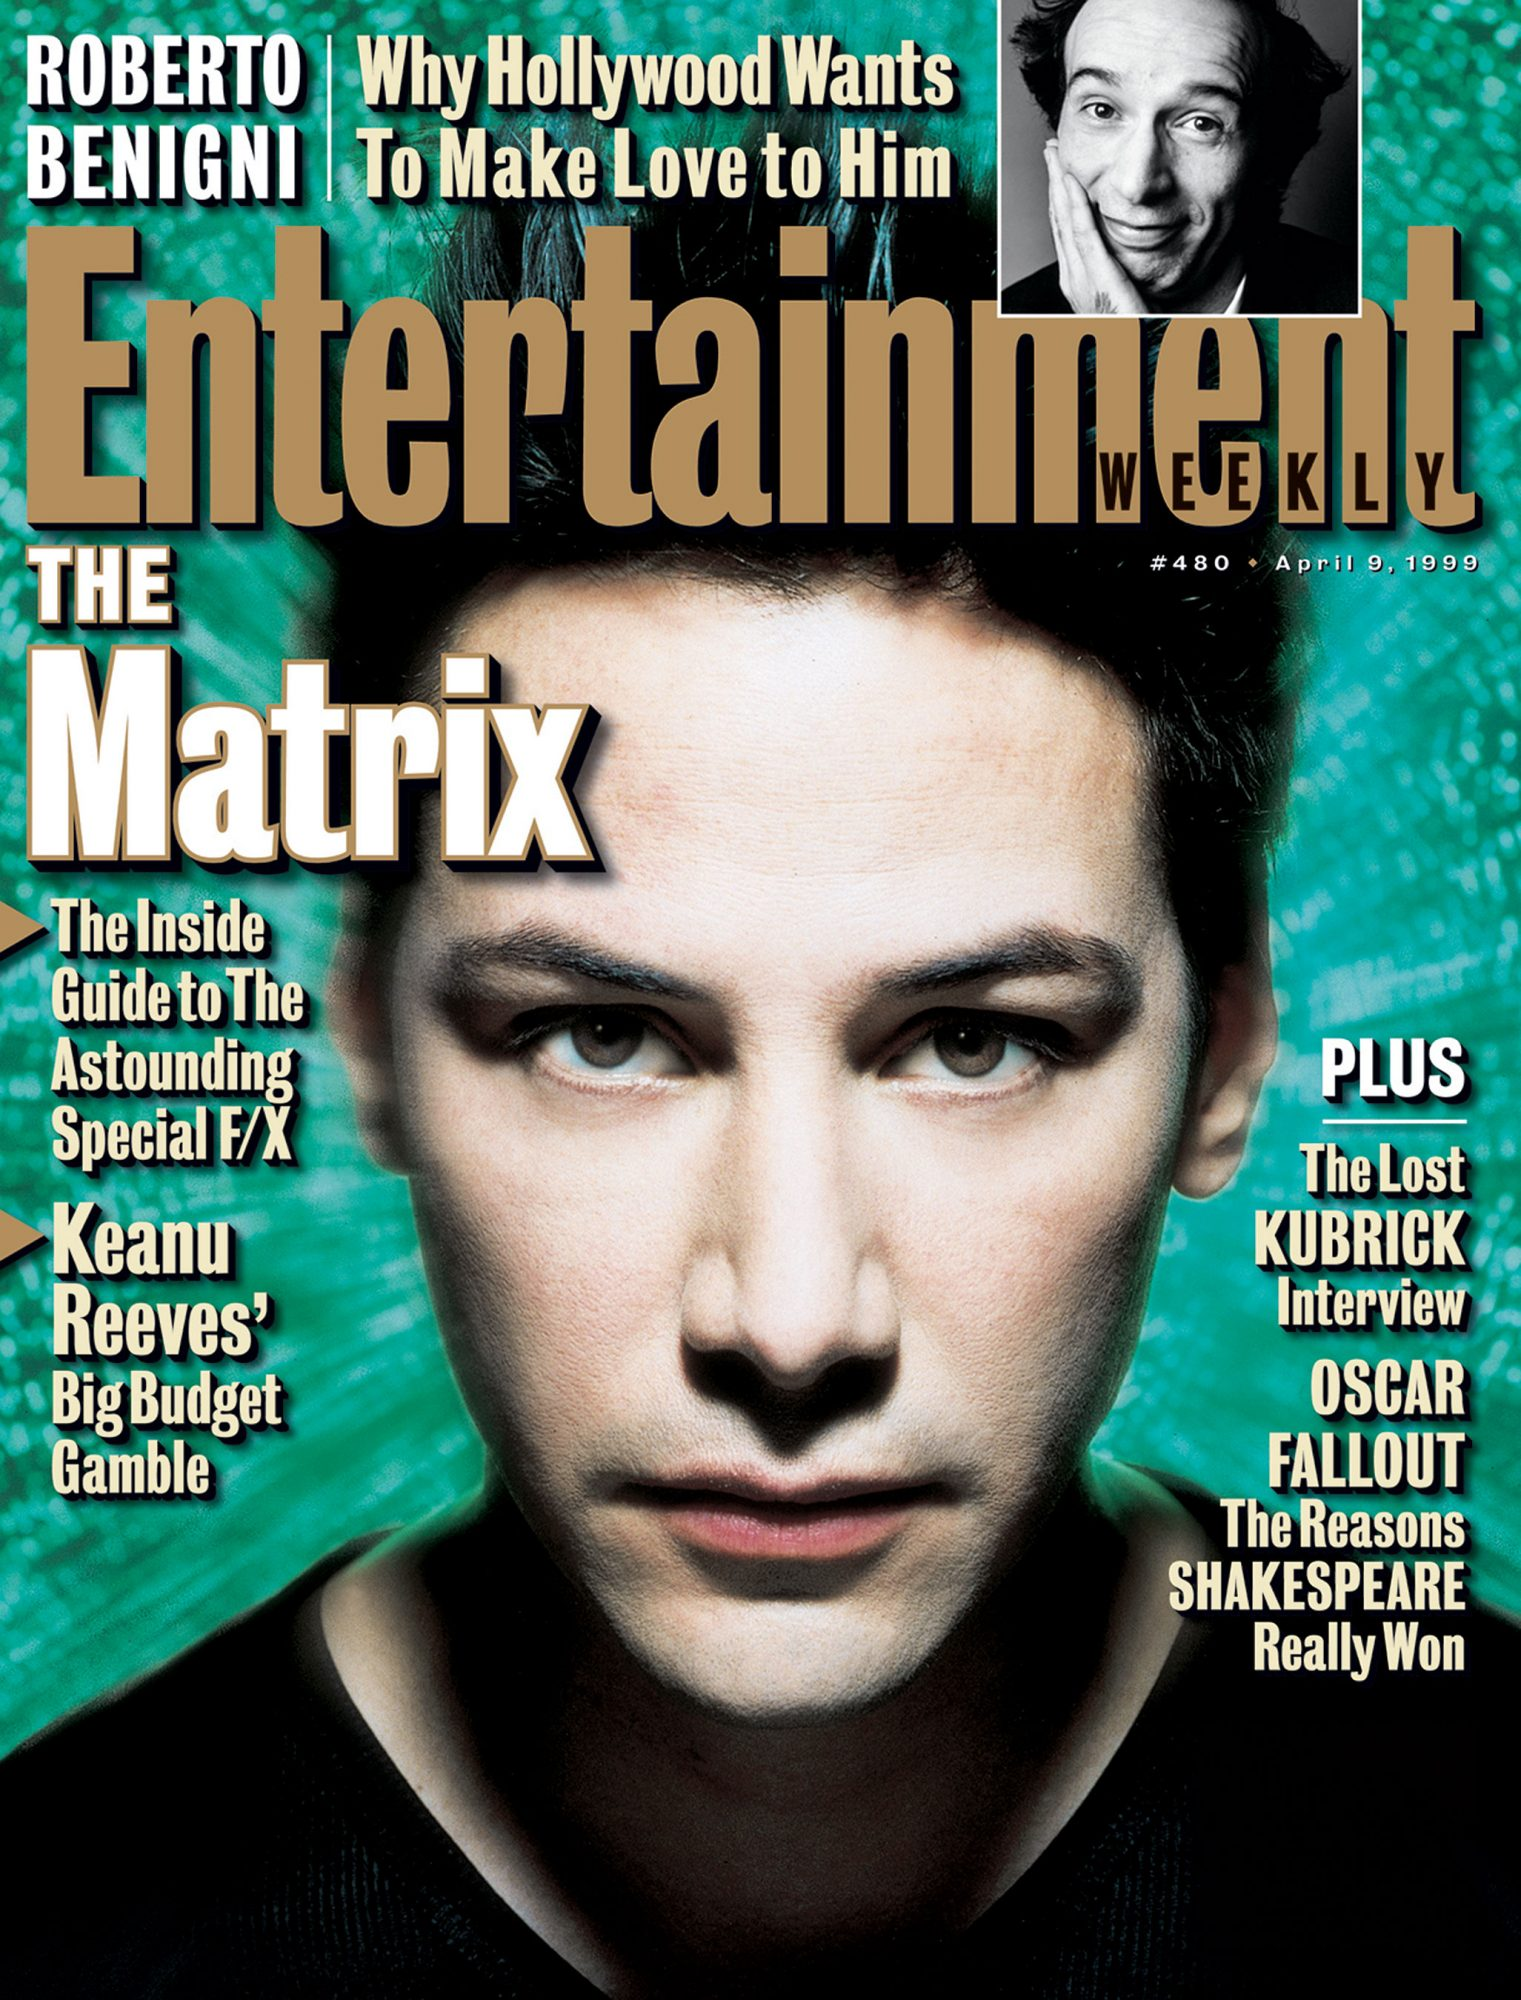 Entertainment WeeklyThe Matrix -  Keanu ReevesApril 9, 1999# 480